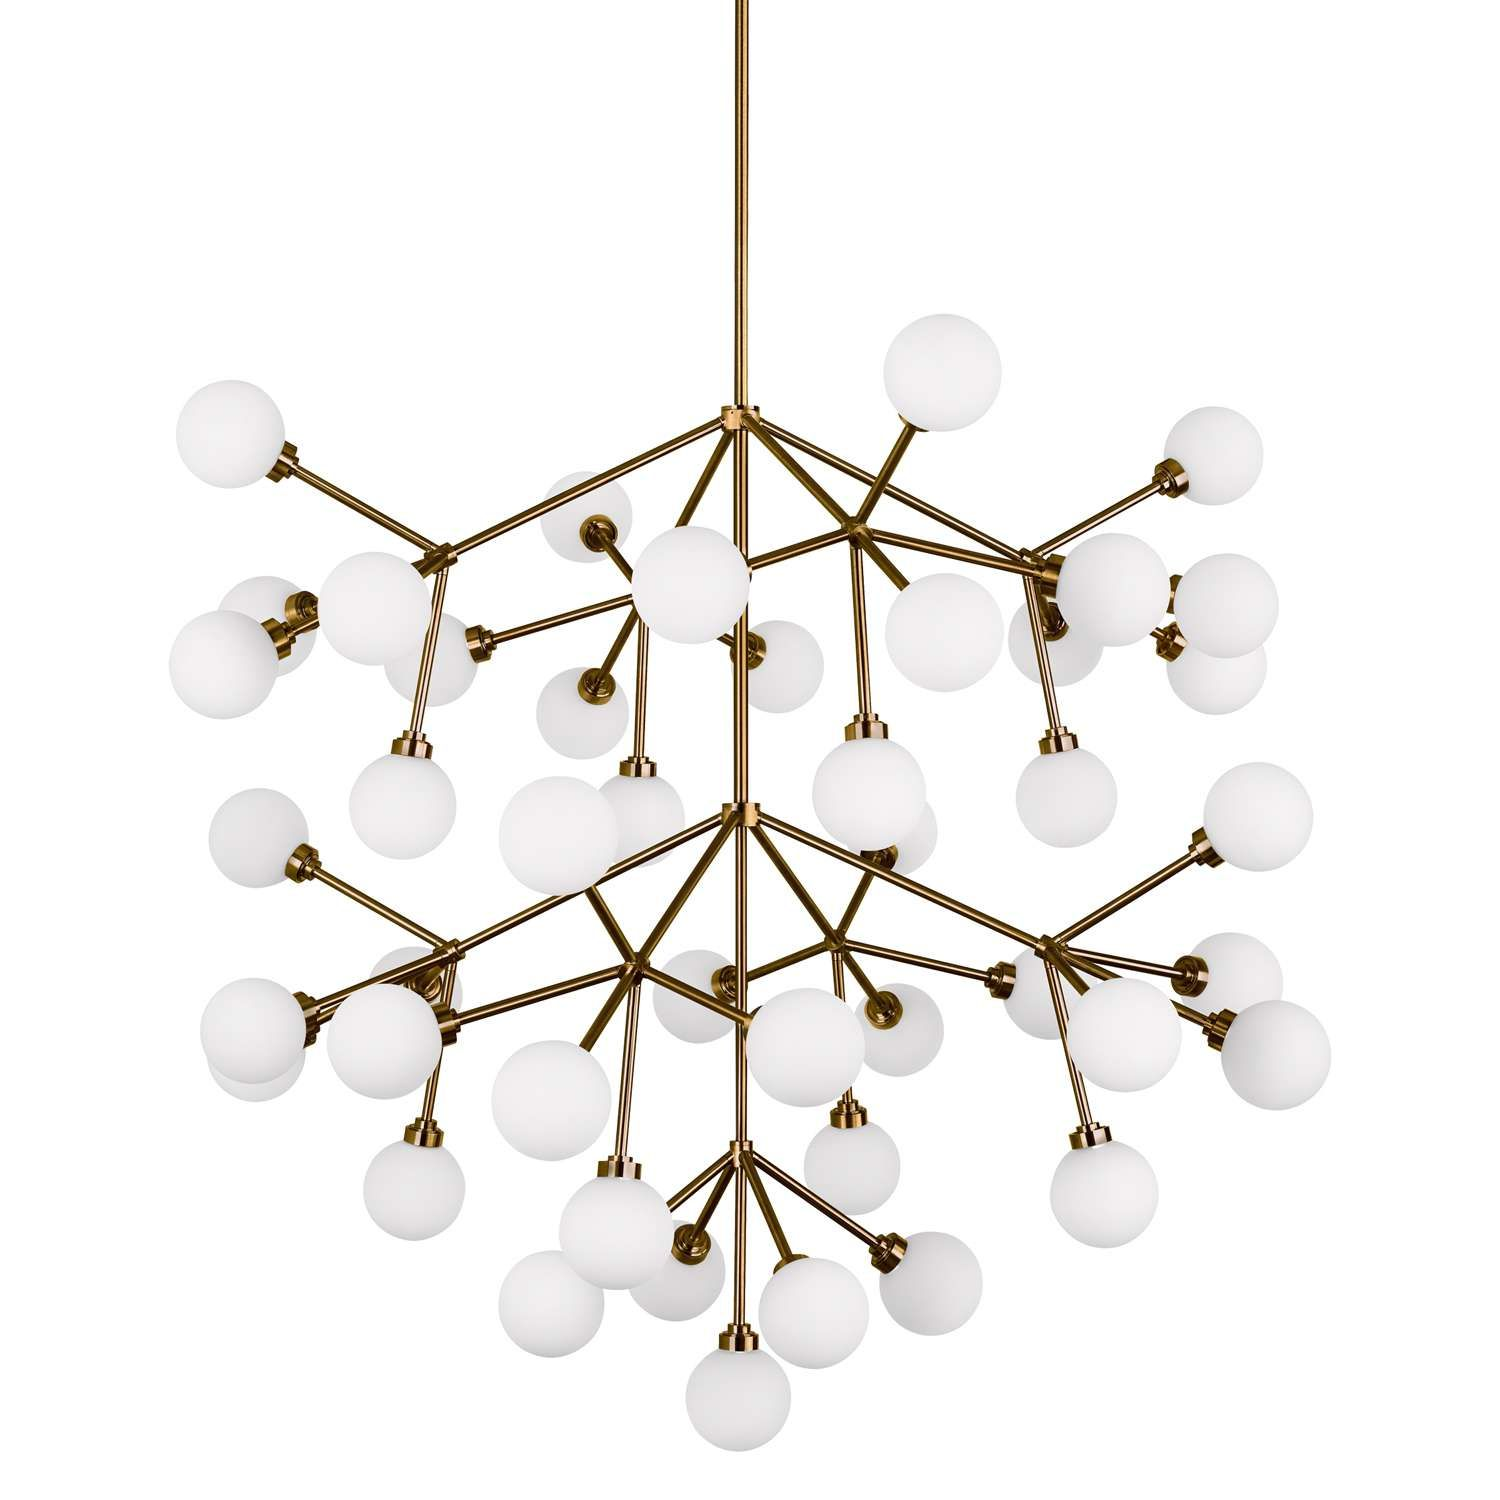 Mara Grande LED Chandelier Lighting Pinterest